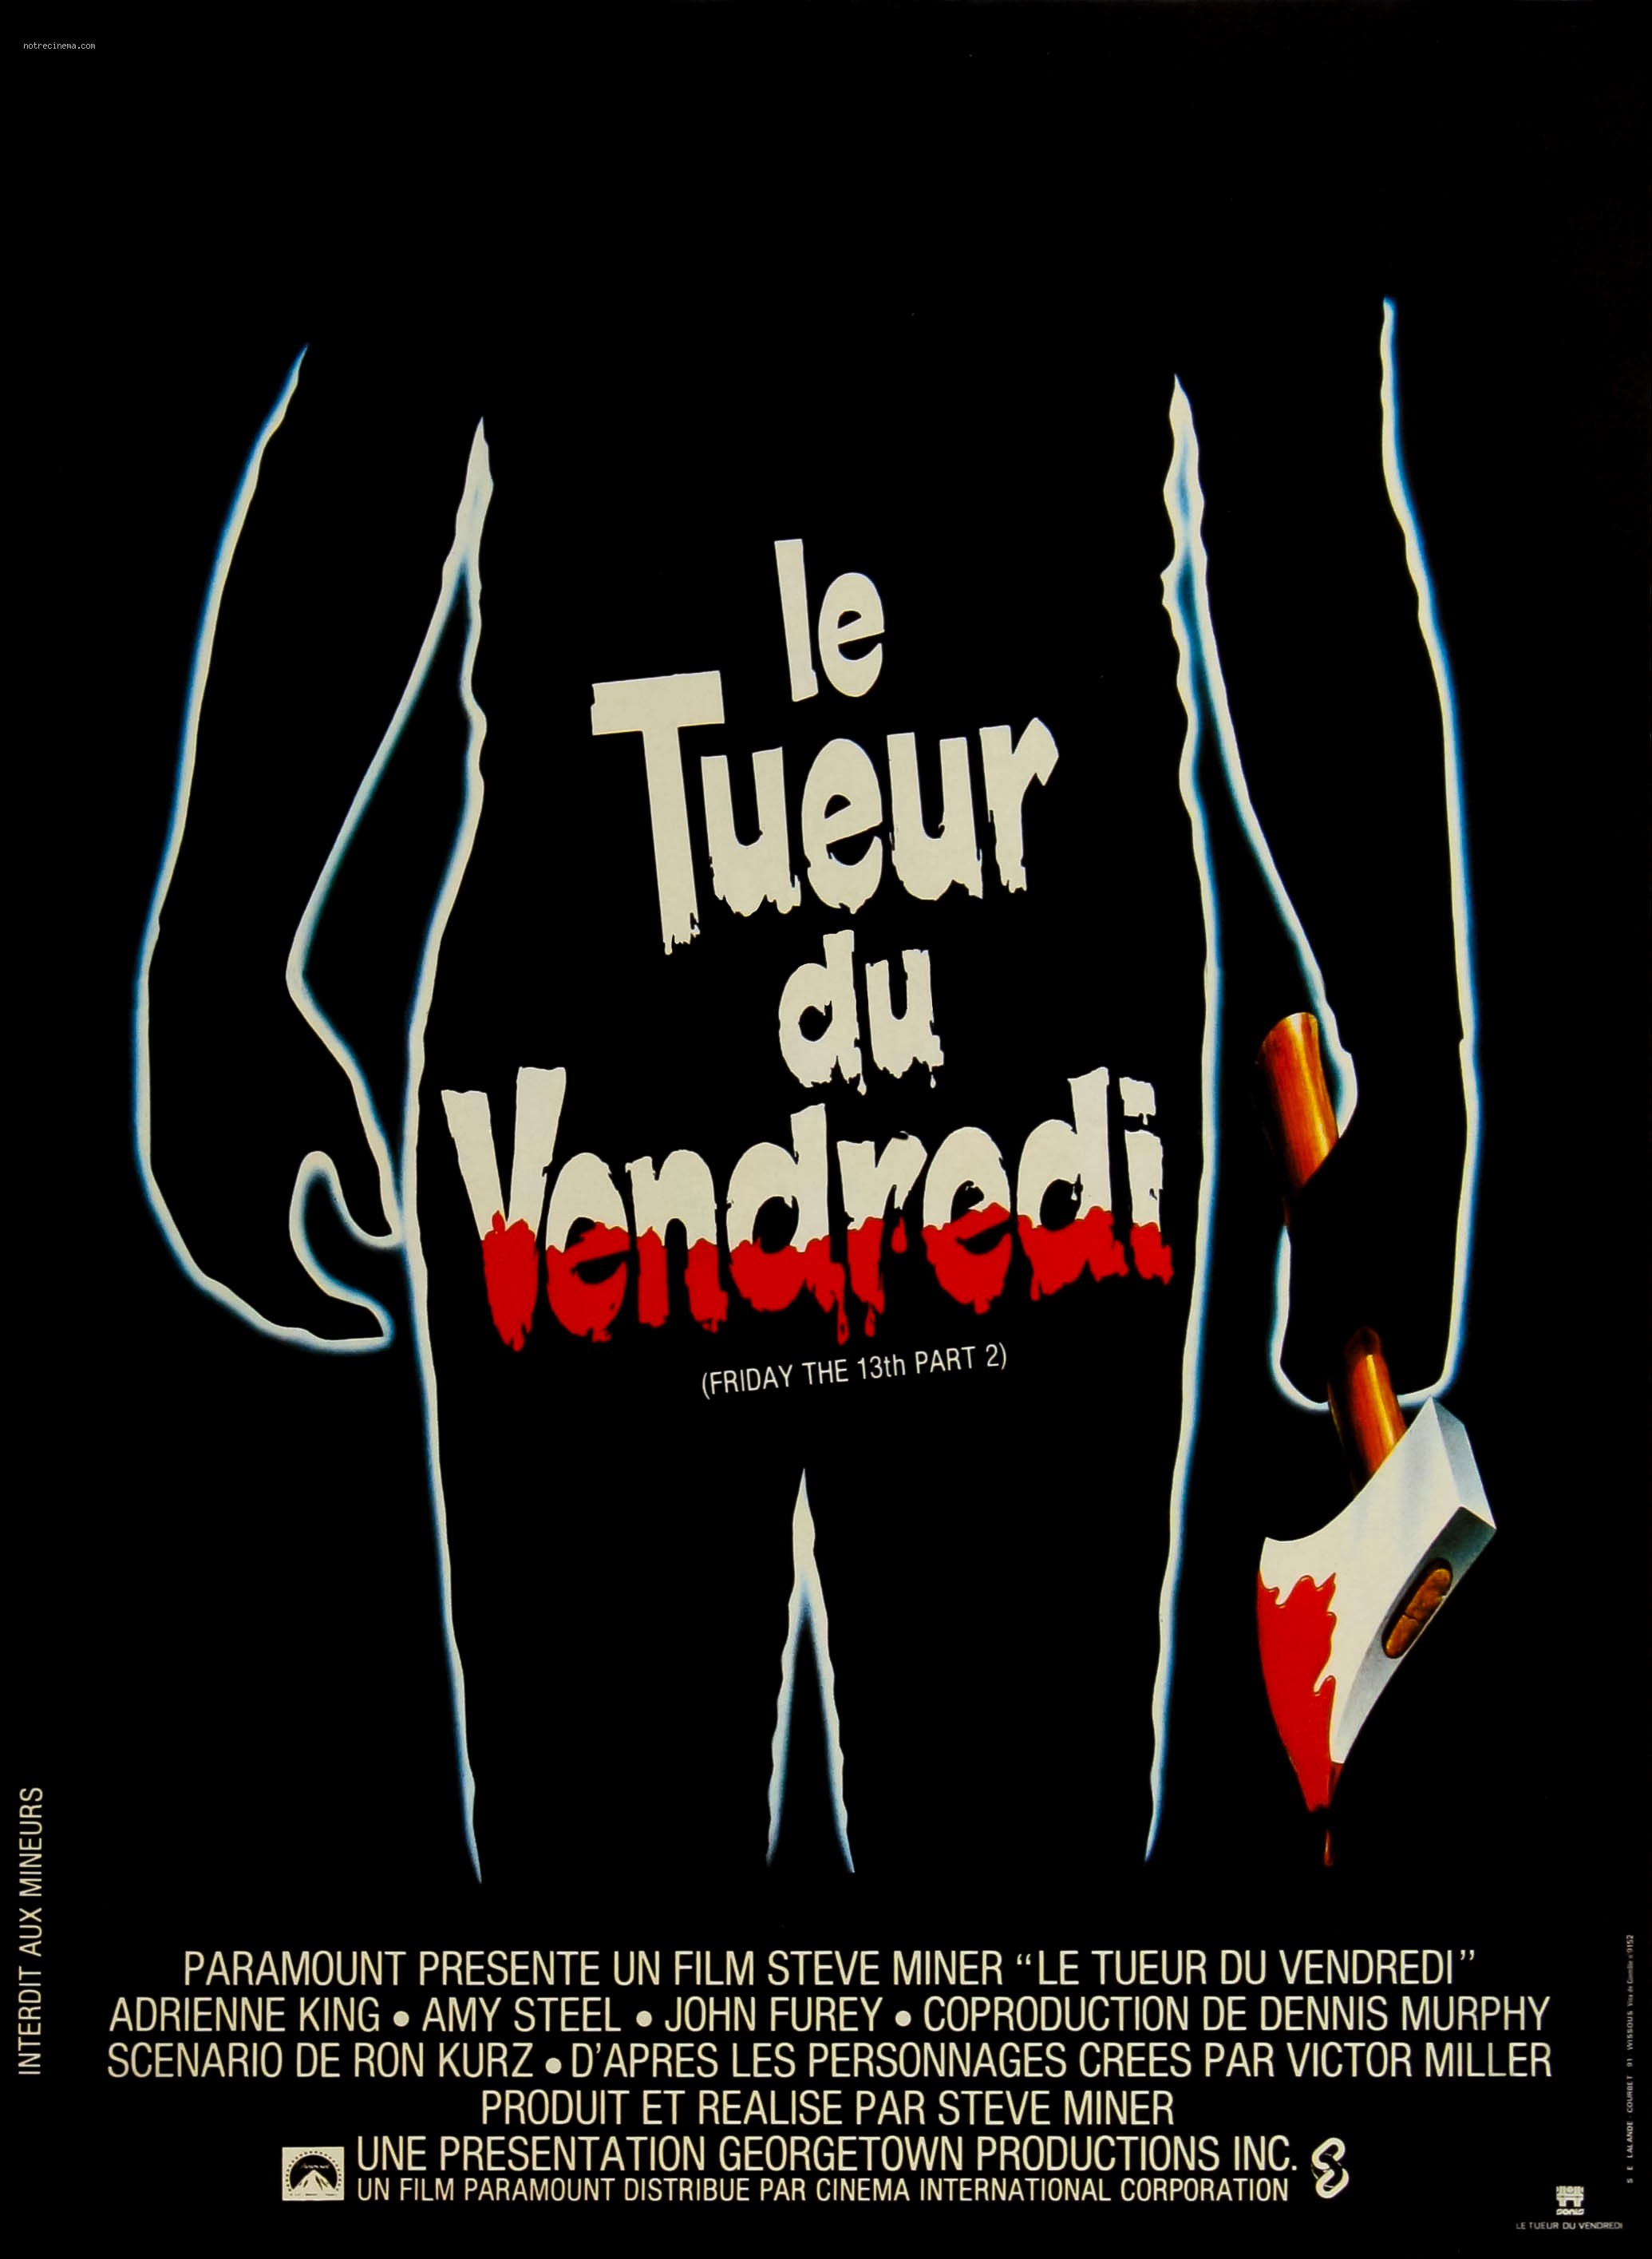 星期五 the 13th Part II French poster